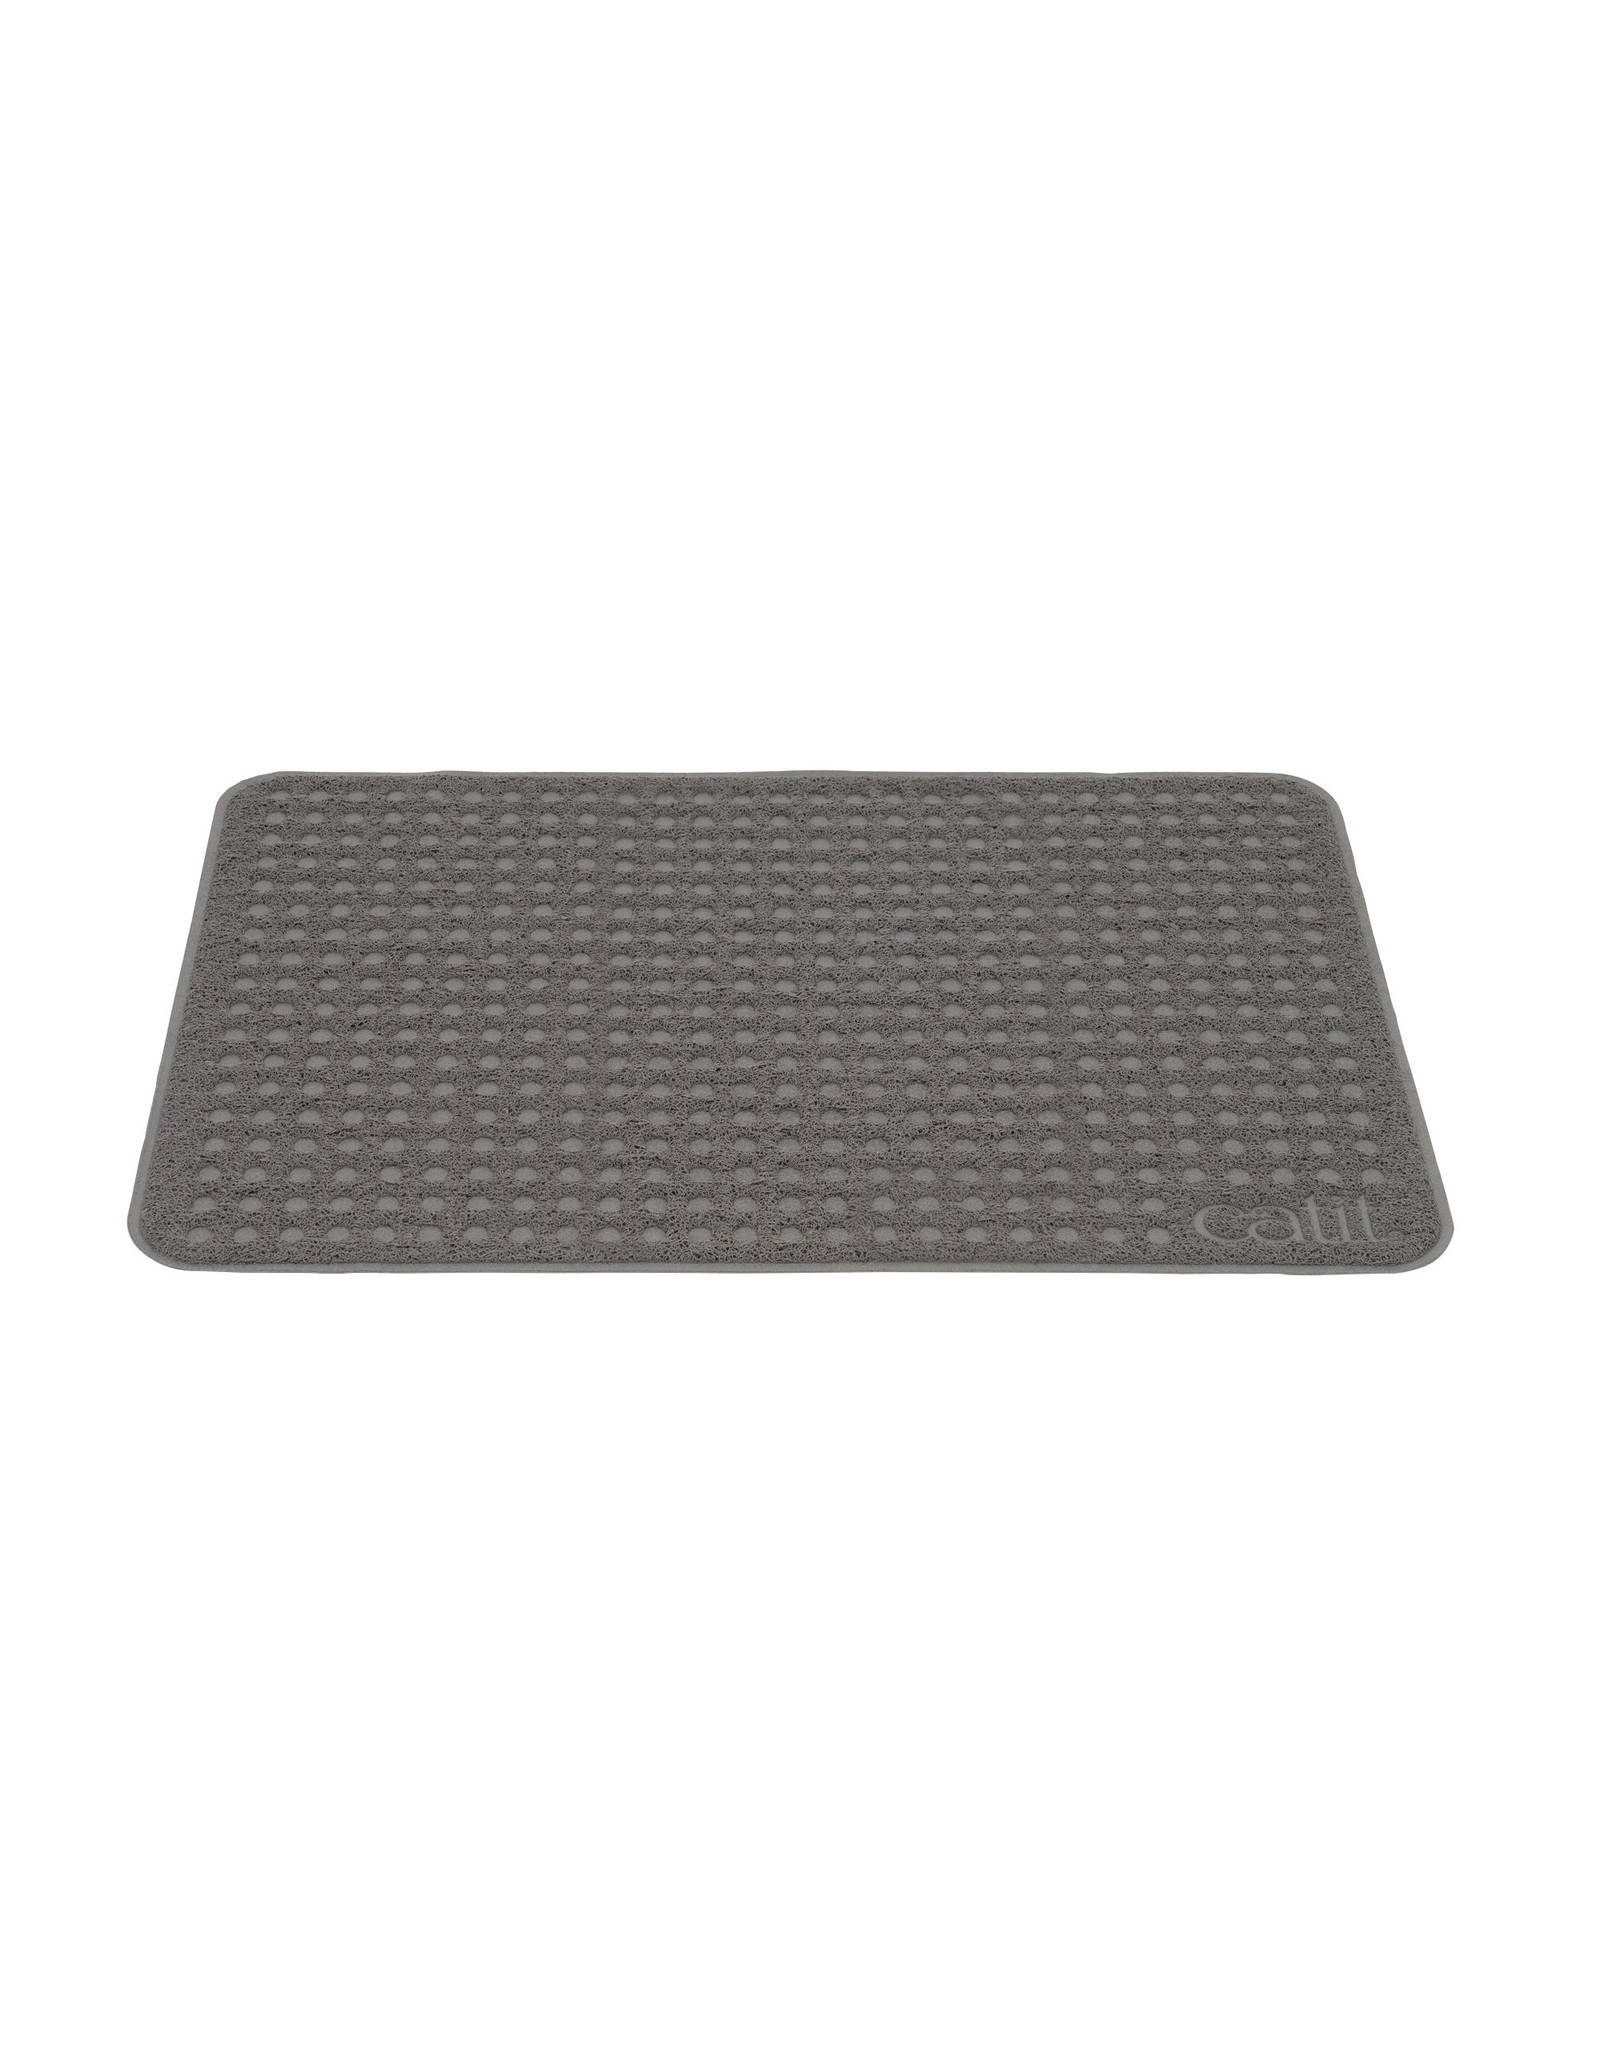 CatIt Litter Mat Large